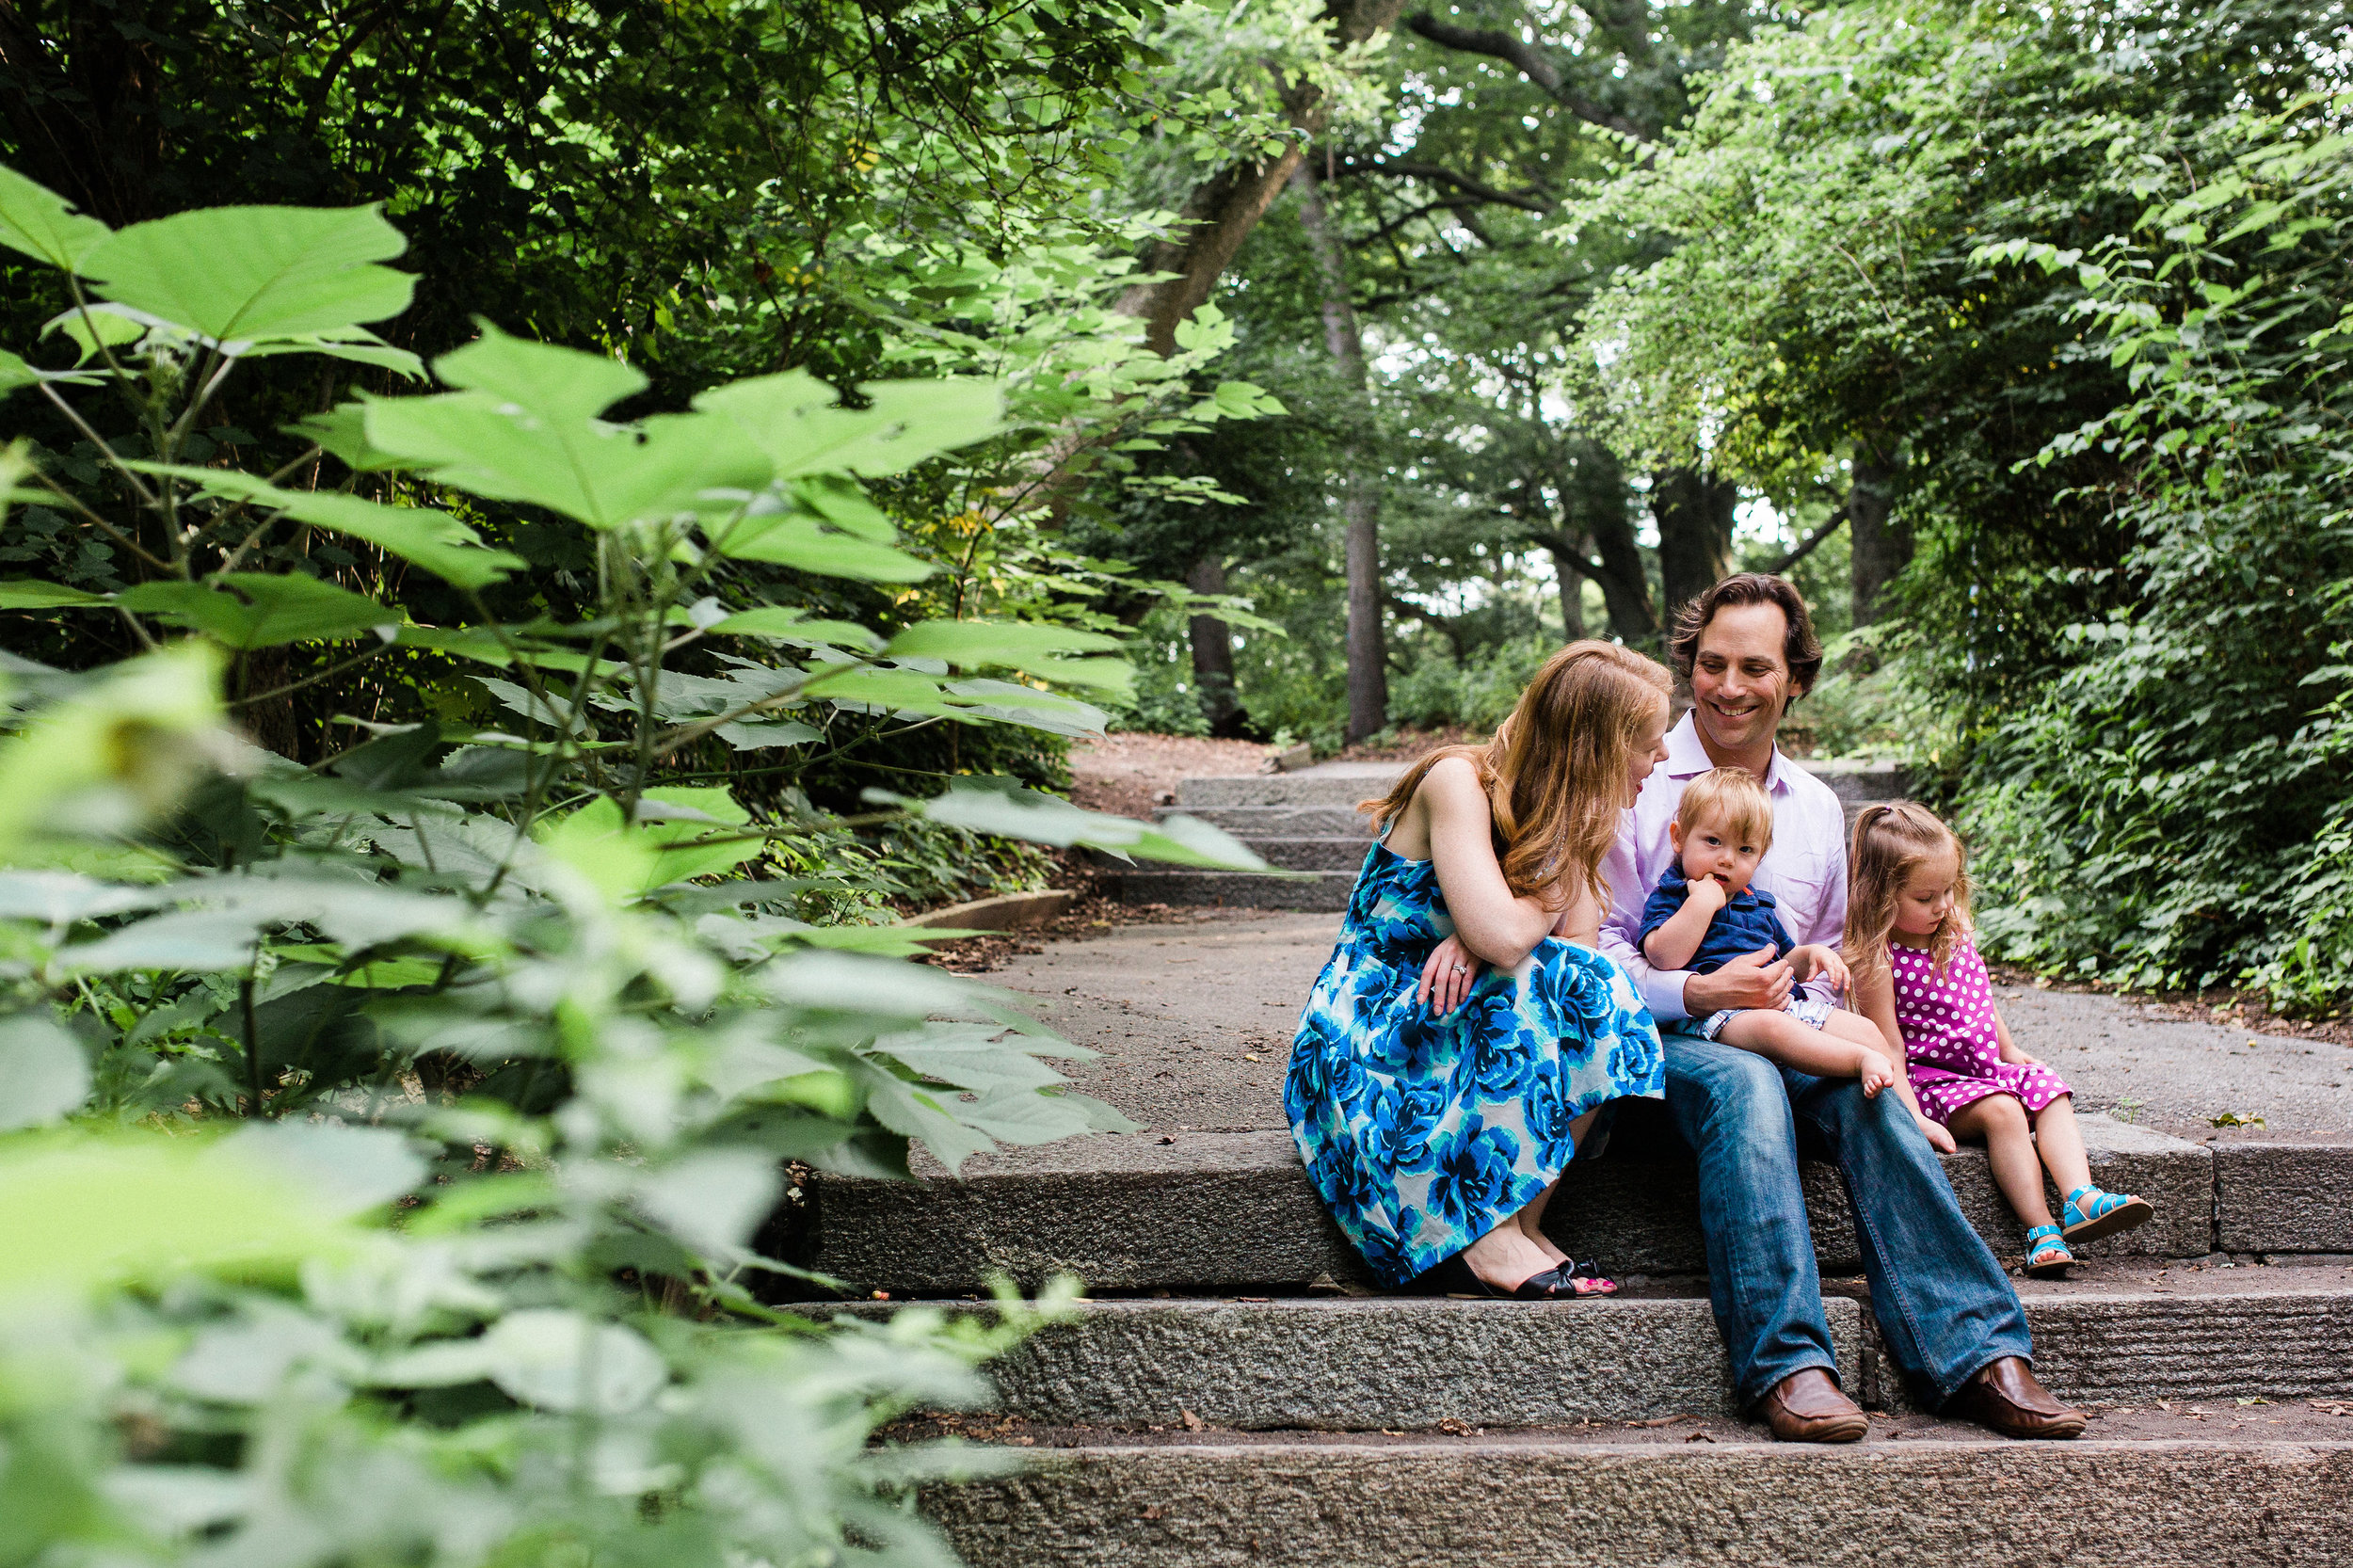 prospect-park-family-photography_natural-playground-21-2.jpg